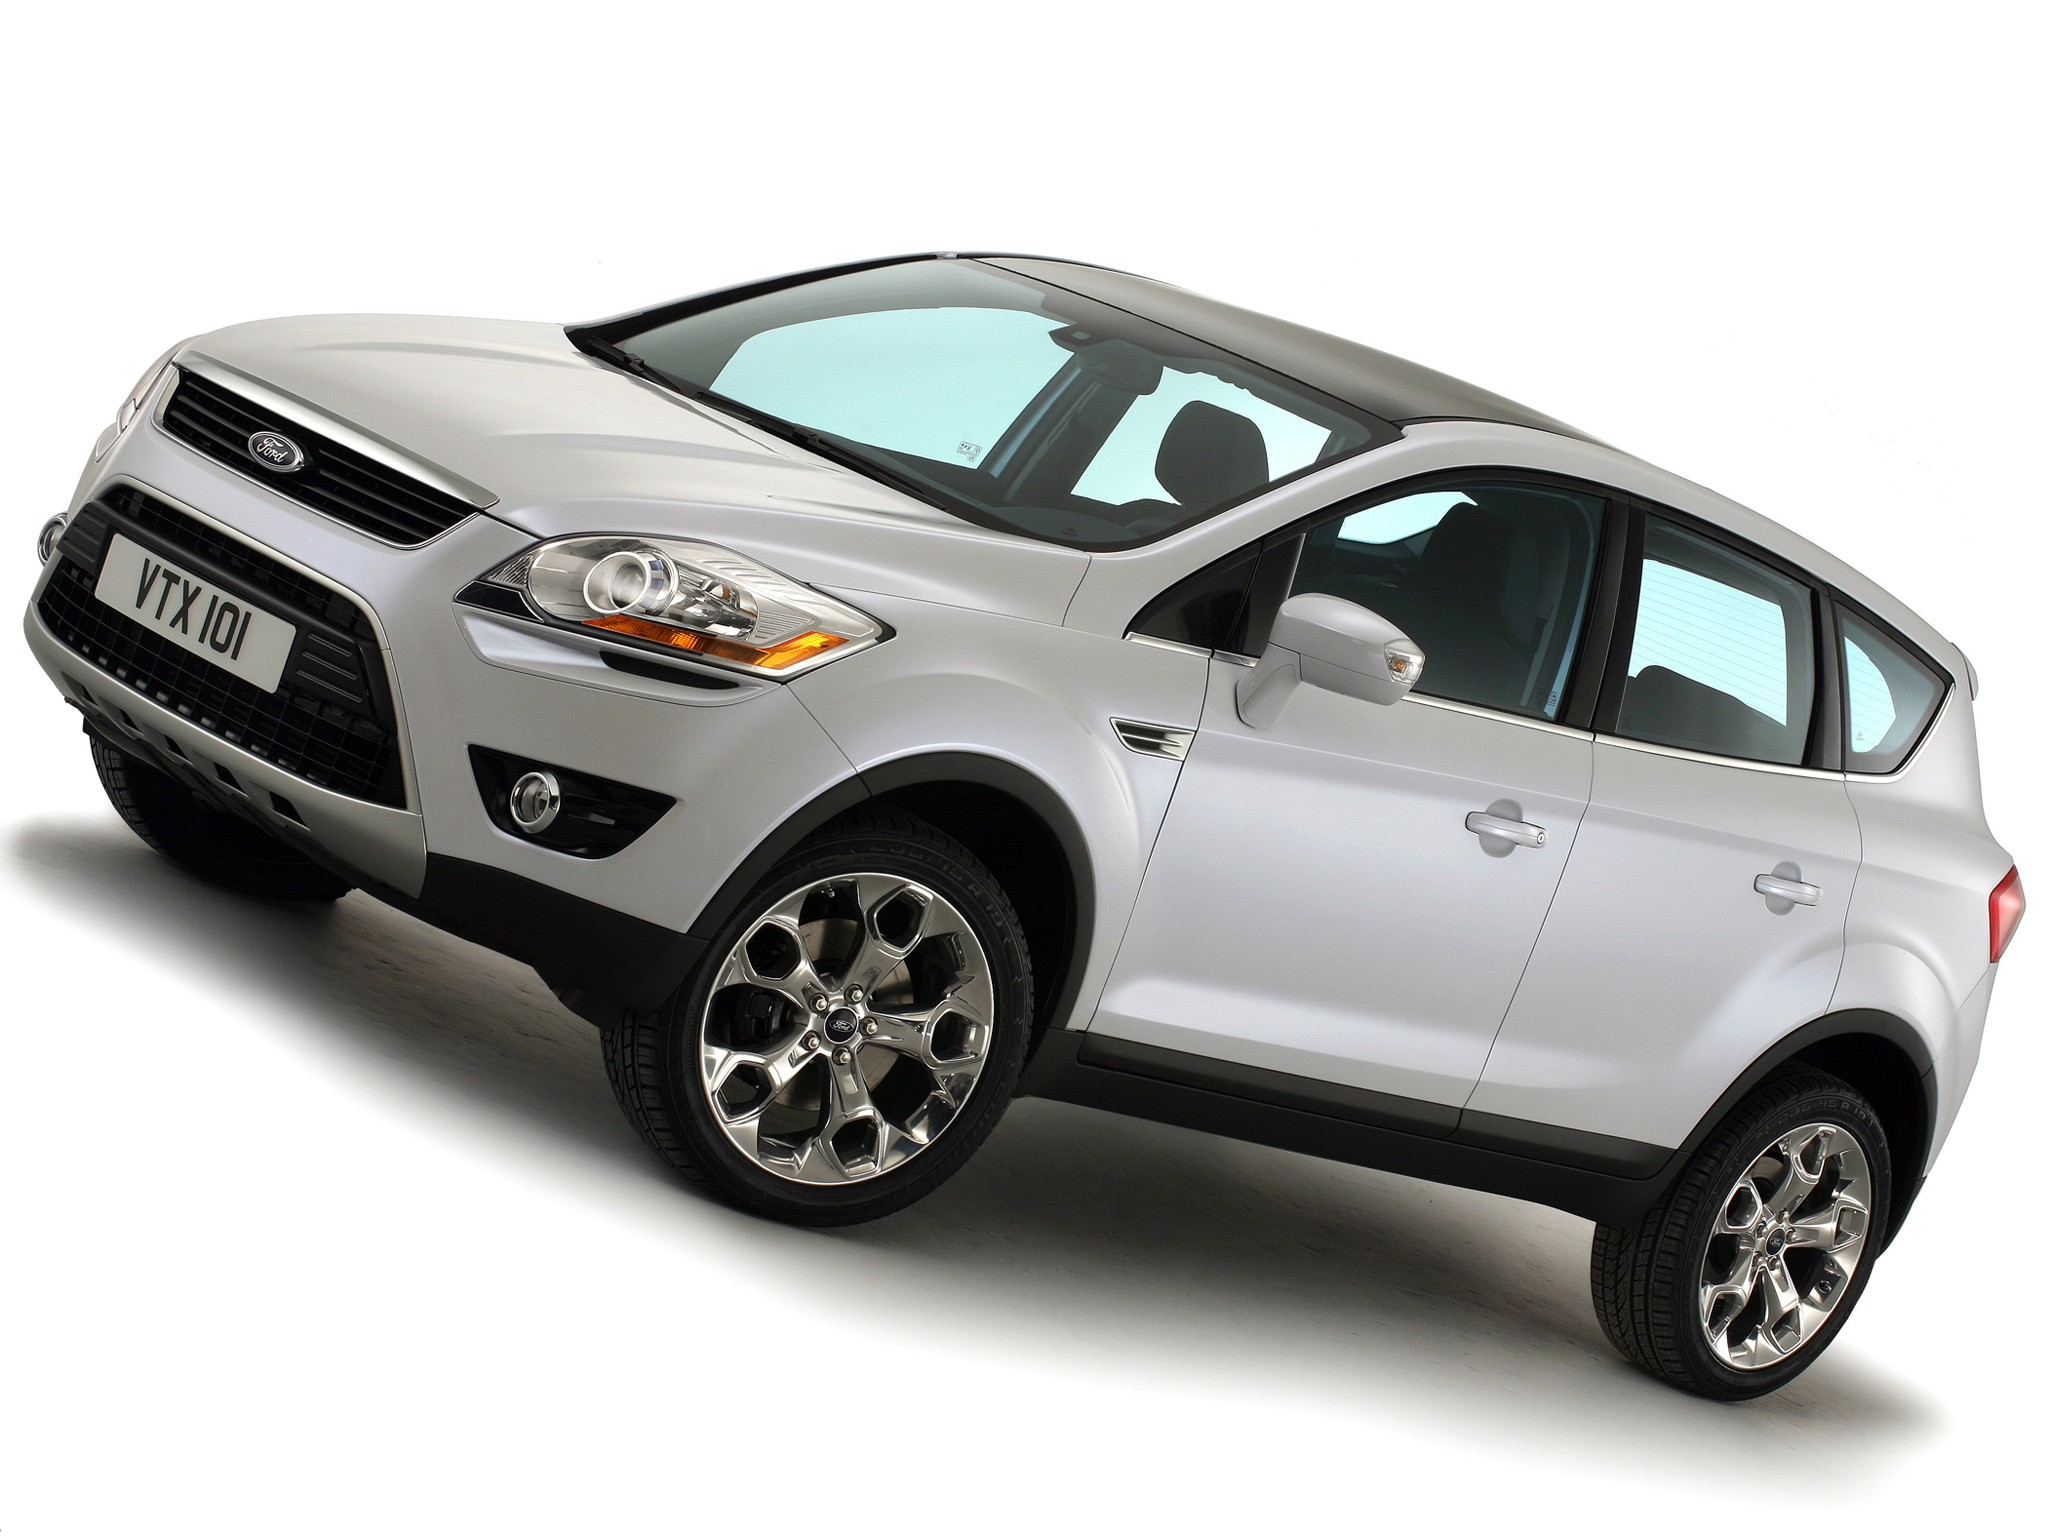 ford kuga specs 2008 2009 2010 2011 2012 autoevolution. Black Bedroom Furniture Sets. Home Design Ideas